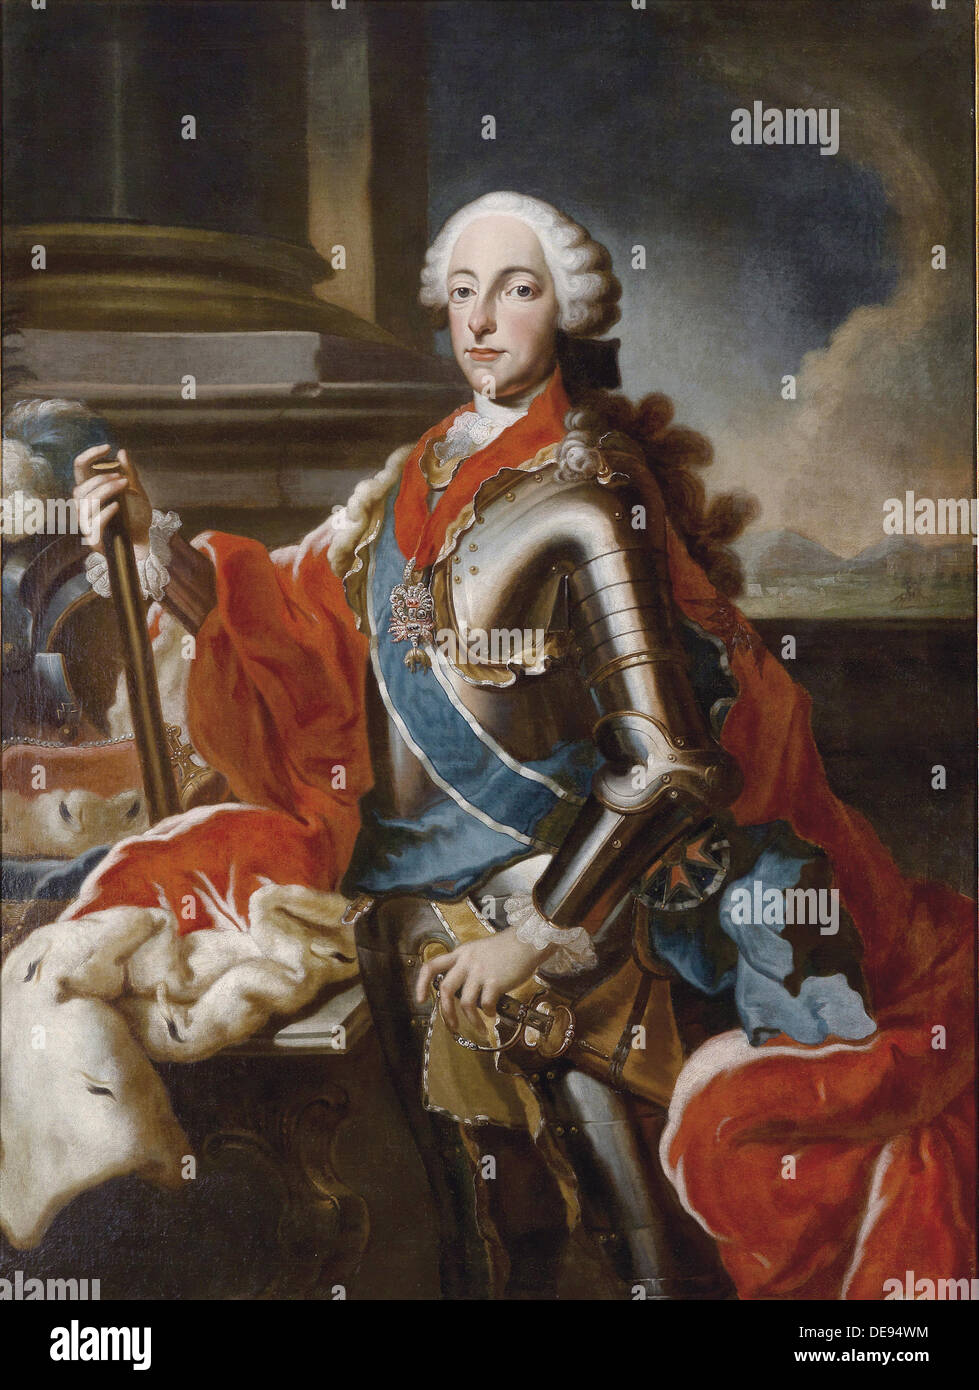 Portrait of Maximilian III Joseph (1727-1777), Elector of Bavaria, Mid of the 18th cen.. Artist: Desmarées, George (1697-1776) - Stock Image